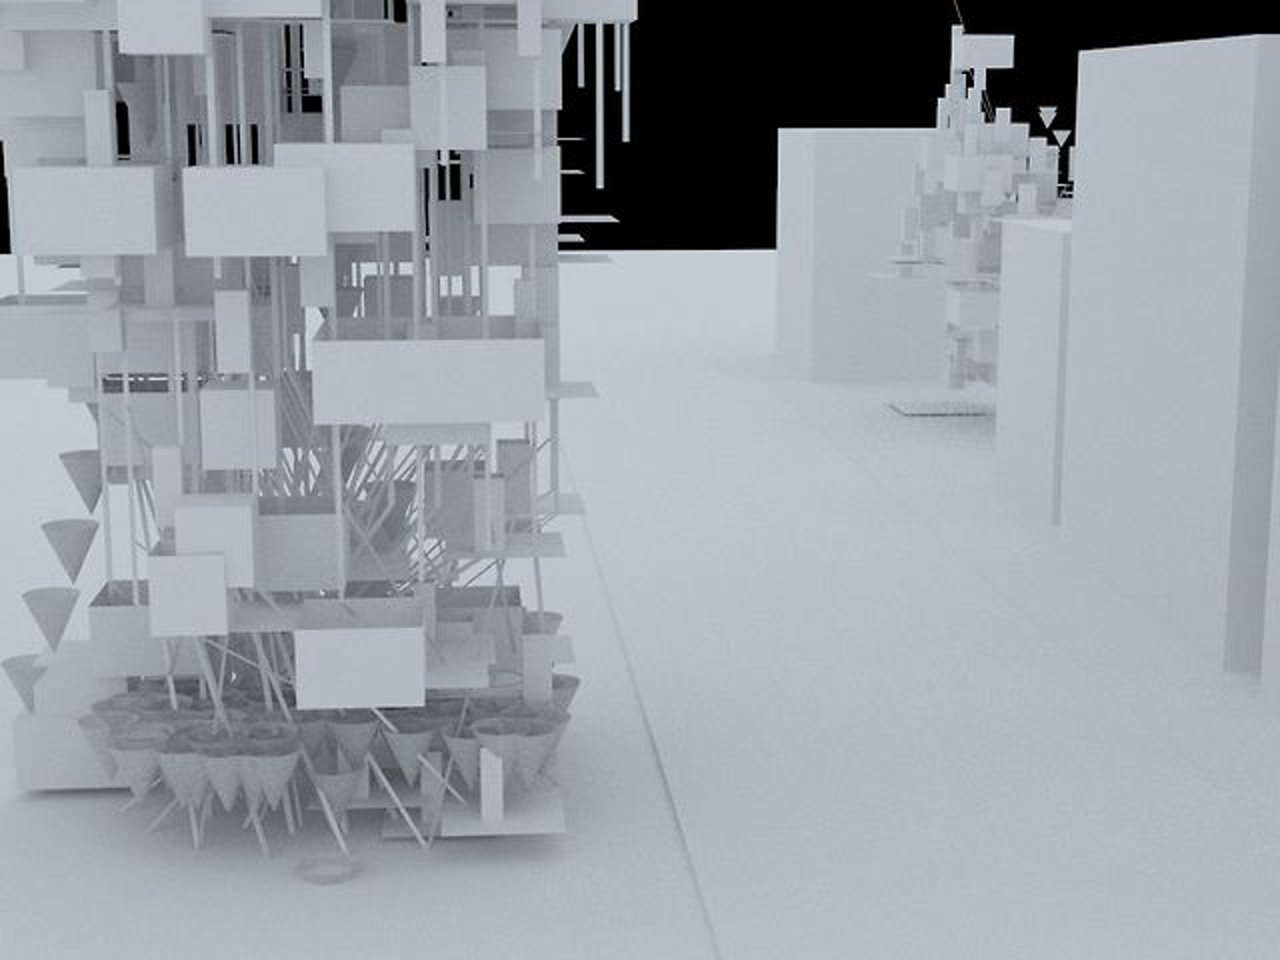 digital architecture (in Grasshopper, Rhino) - density housing, algorithm, programming